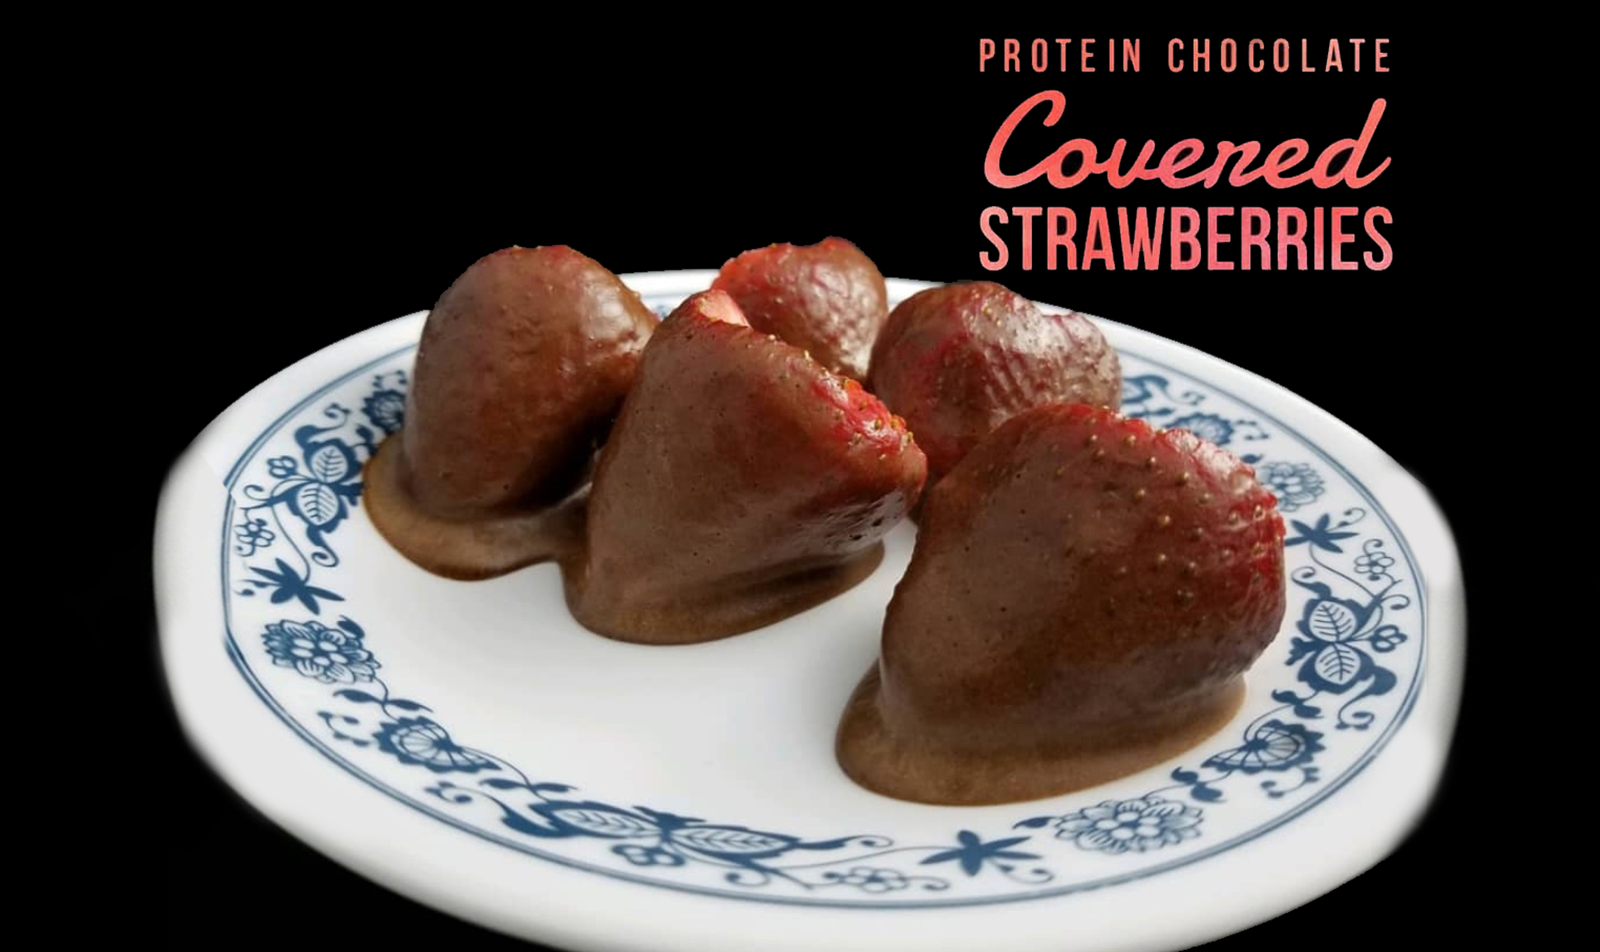 Protein Chocolate-Covered Strawberries